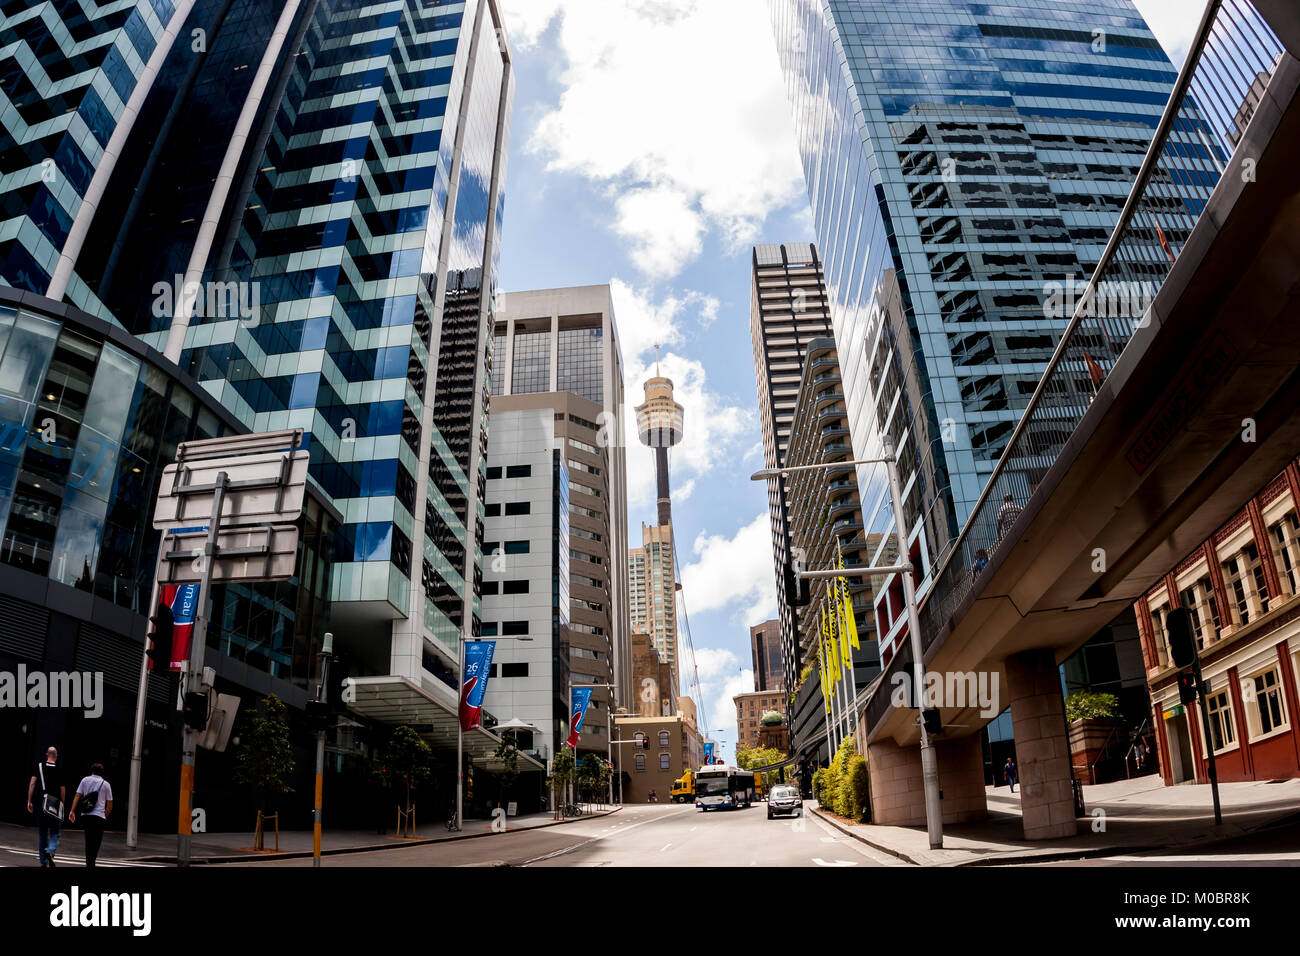 Sydney, Australia. Famous Sydney Tower Eye, known as Westfield Tower, between skyscrapers at Sydney street. - Stock Image